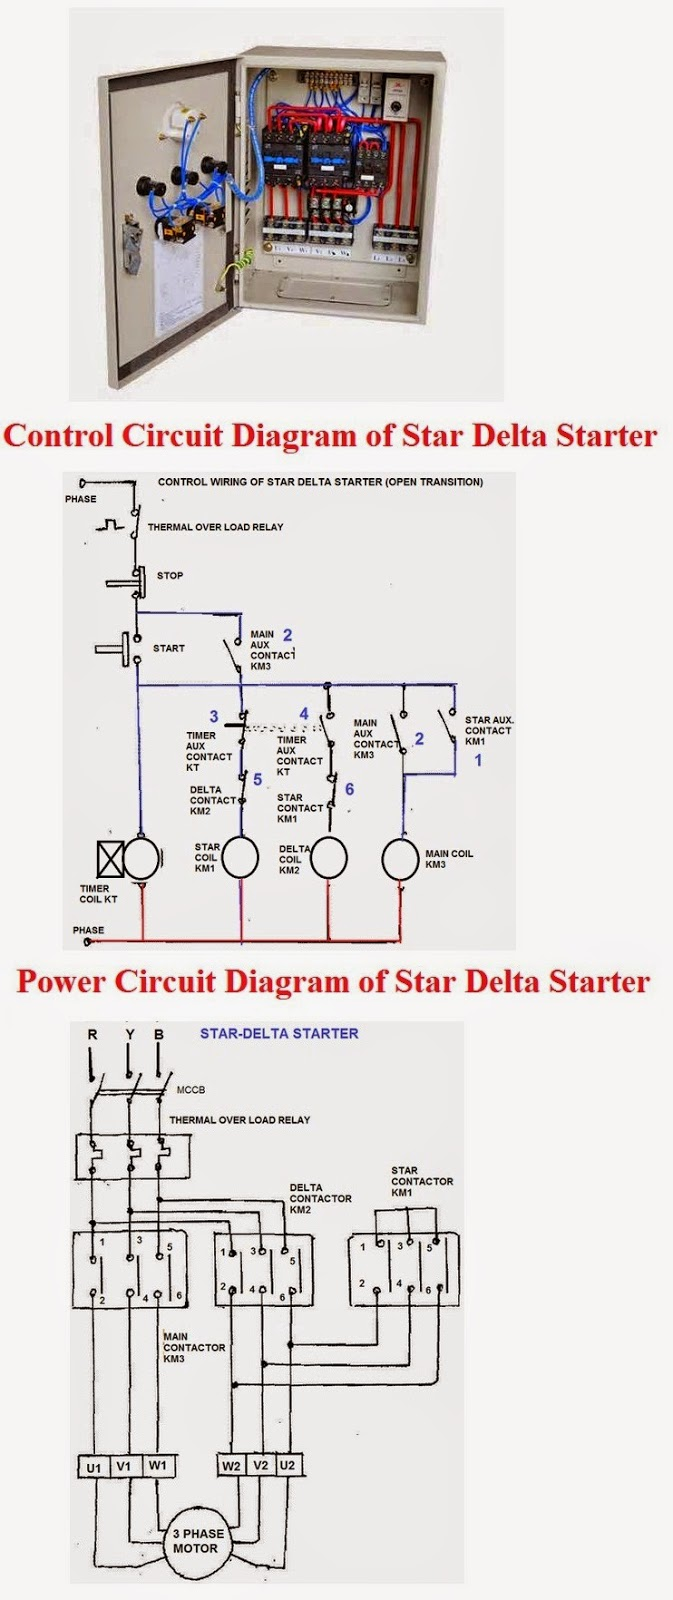 Star Delta Wiring Diagram Motor Simple Respiration Star-delta Three Phase Starter (control & Power Circuit Diagram) | Elec Eng World